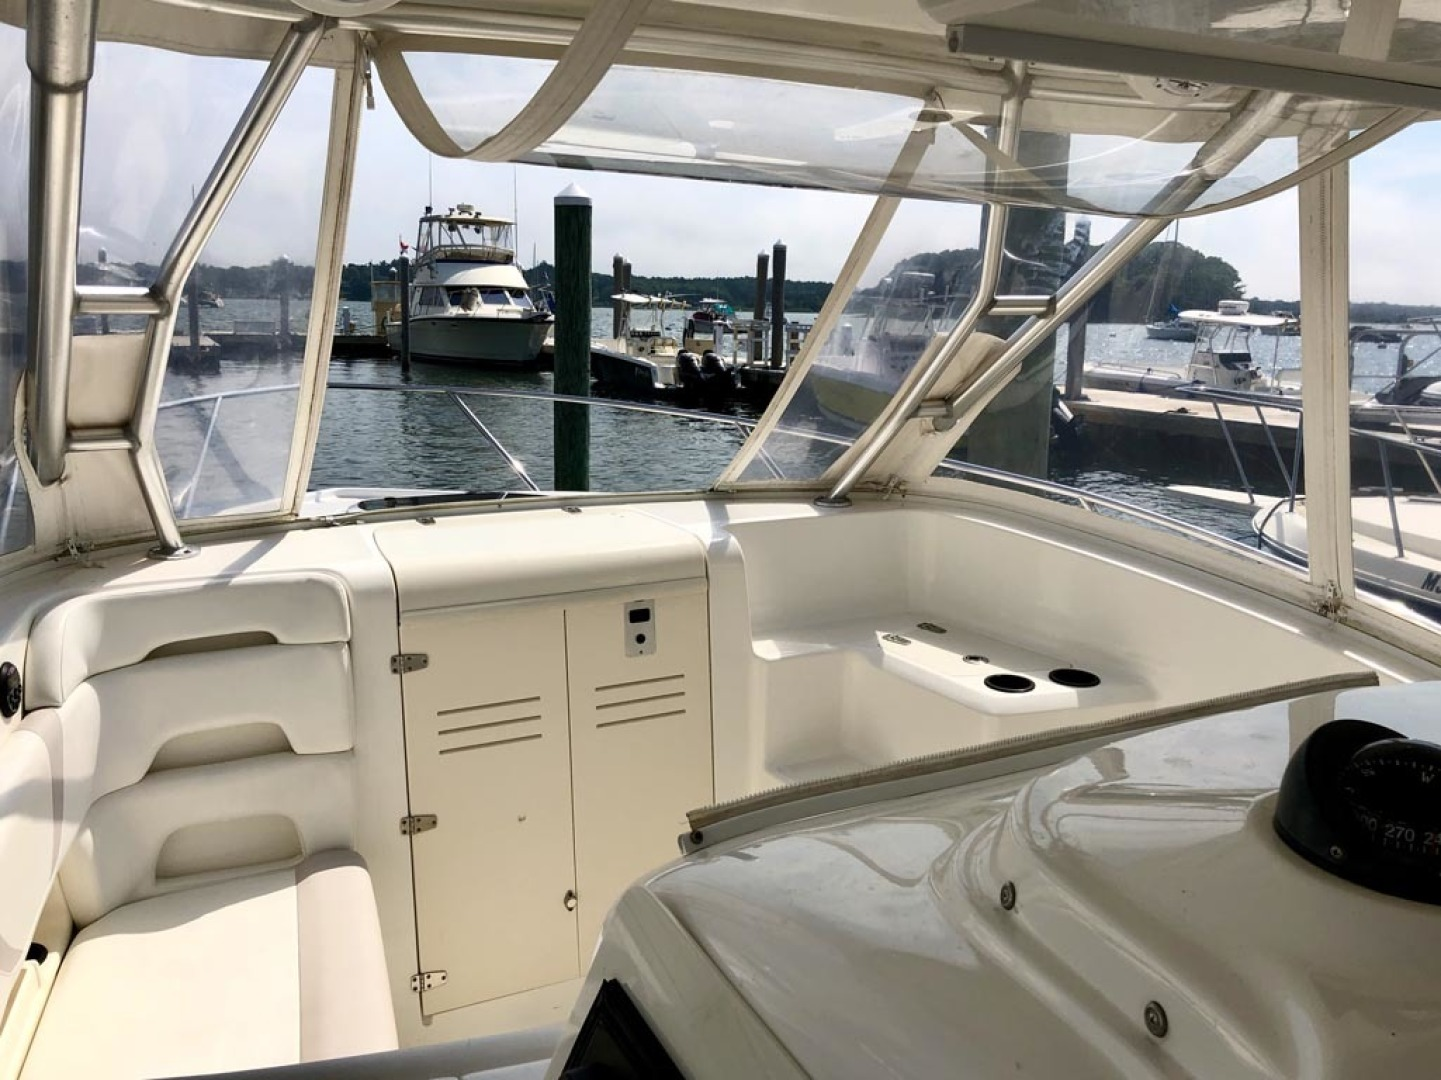 Boston Whaler-320 Outrage Cuddy Cabin 2008 -Onset-Massachusetts-United States-1447520 | Thumbnail